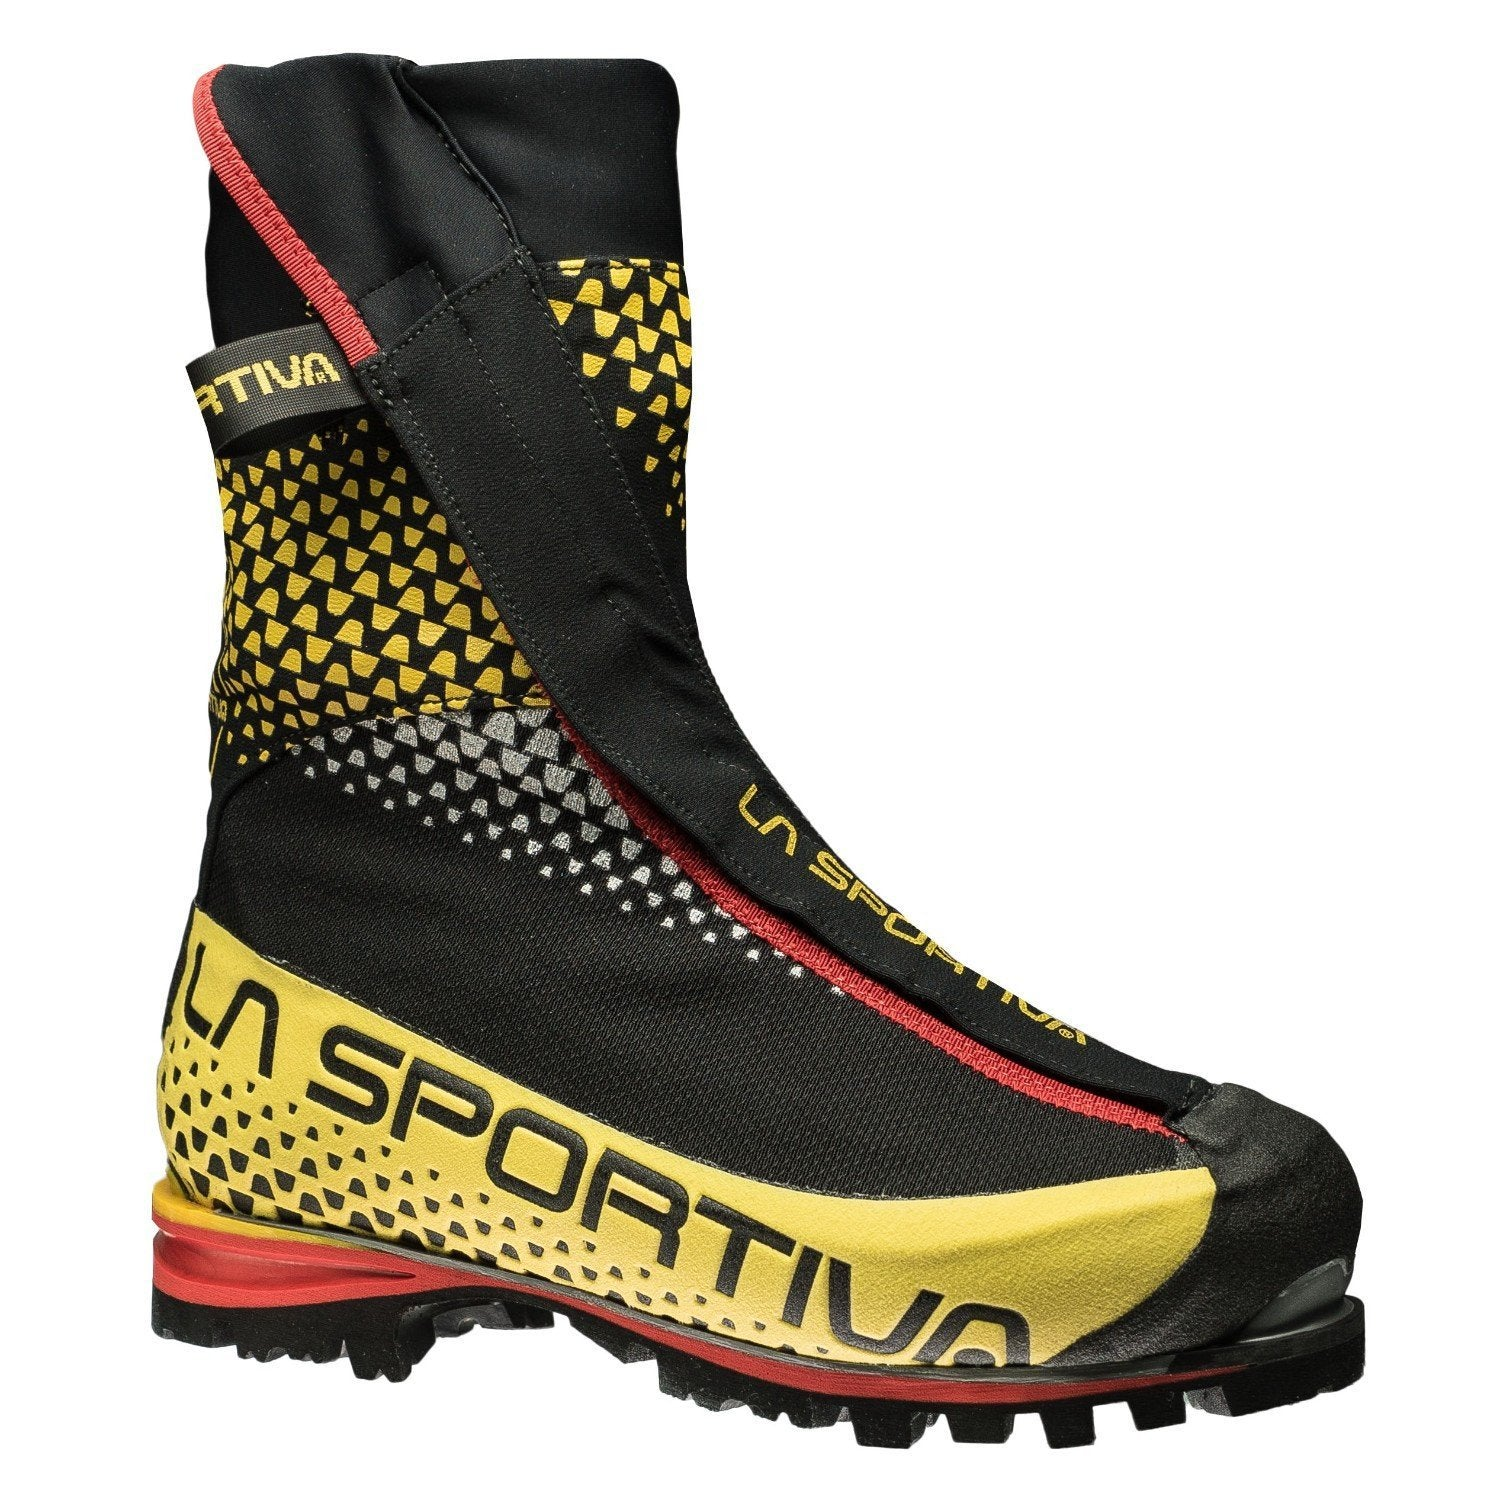 La Sportiva G5 Mountaineering Boot, in black, yellow and red colours